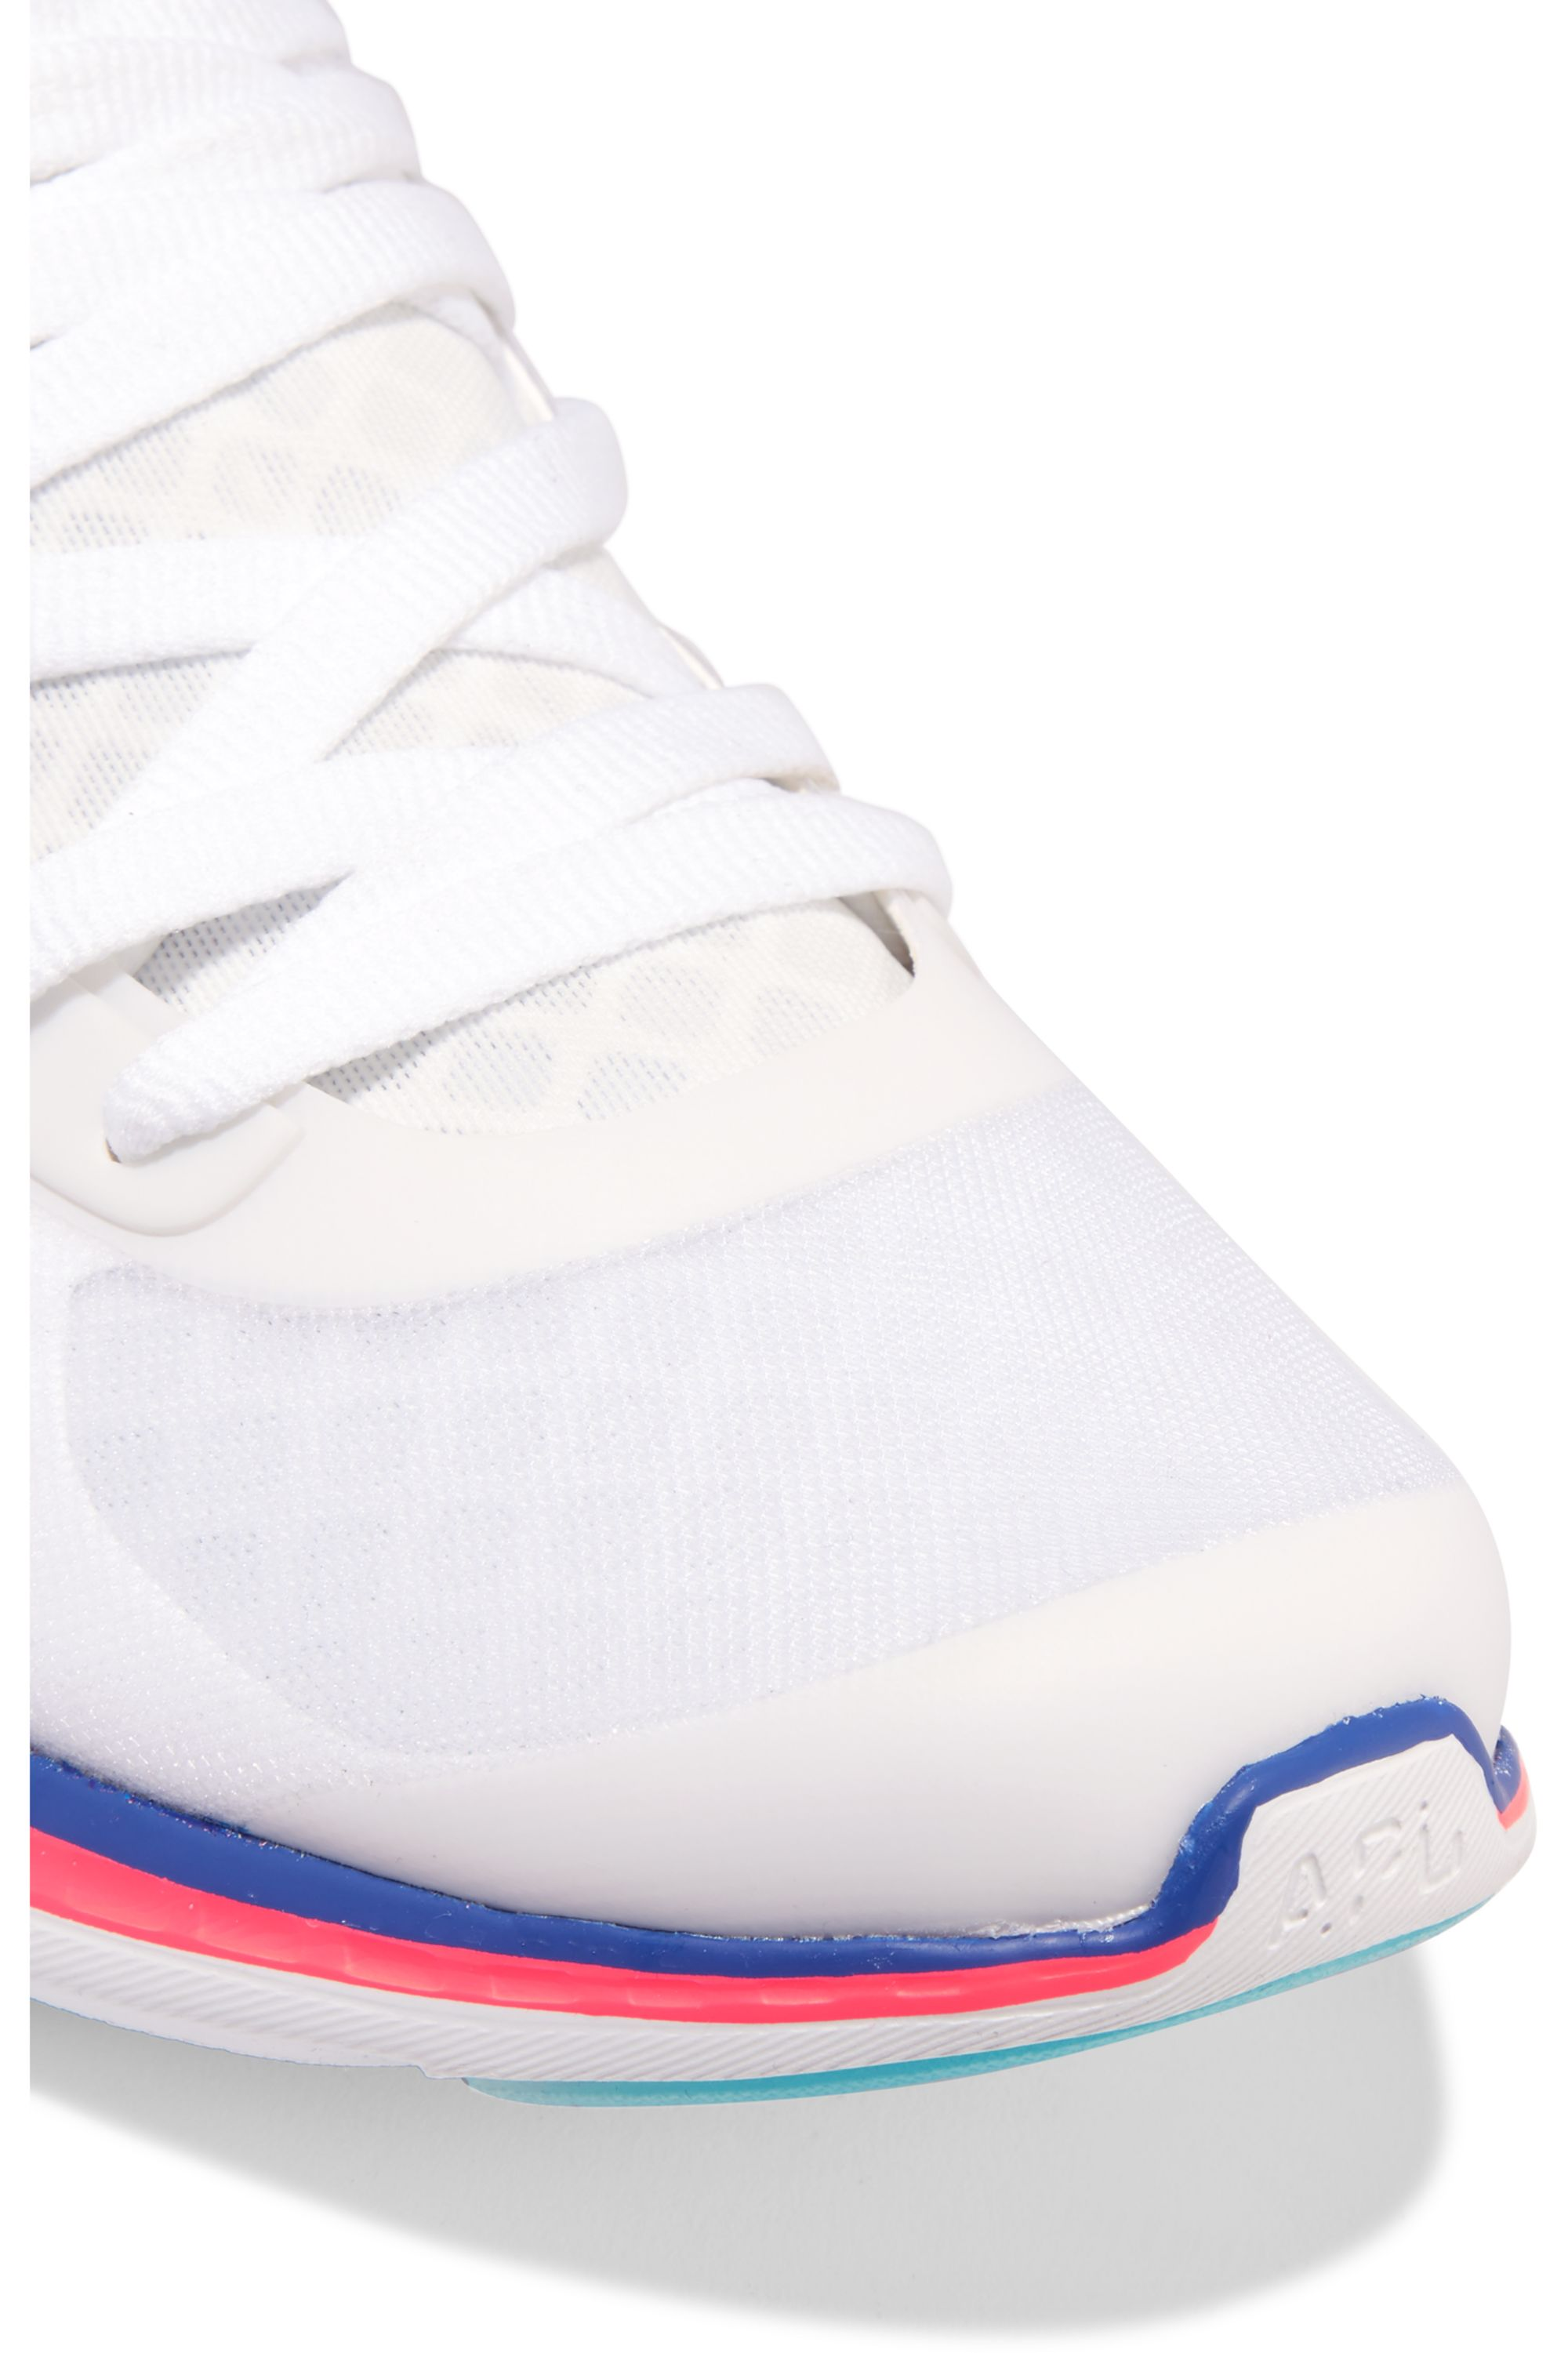 APL Athletic Propulsion Labs Prism mesh sneakers